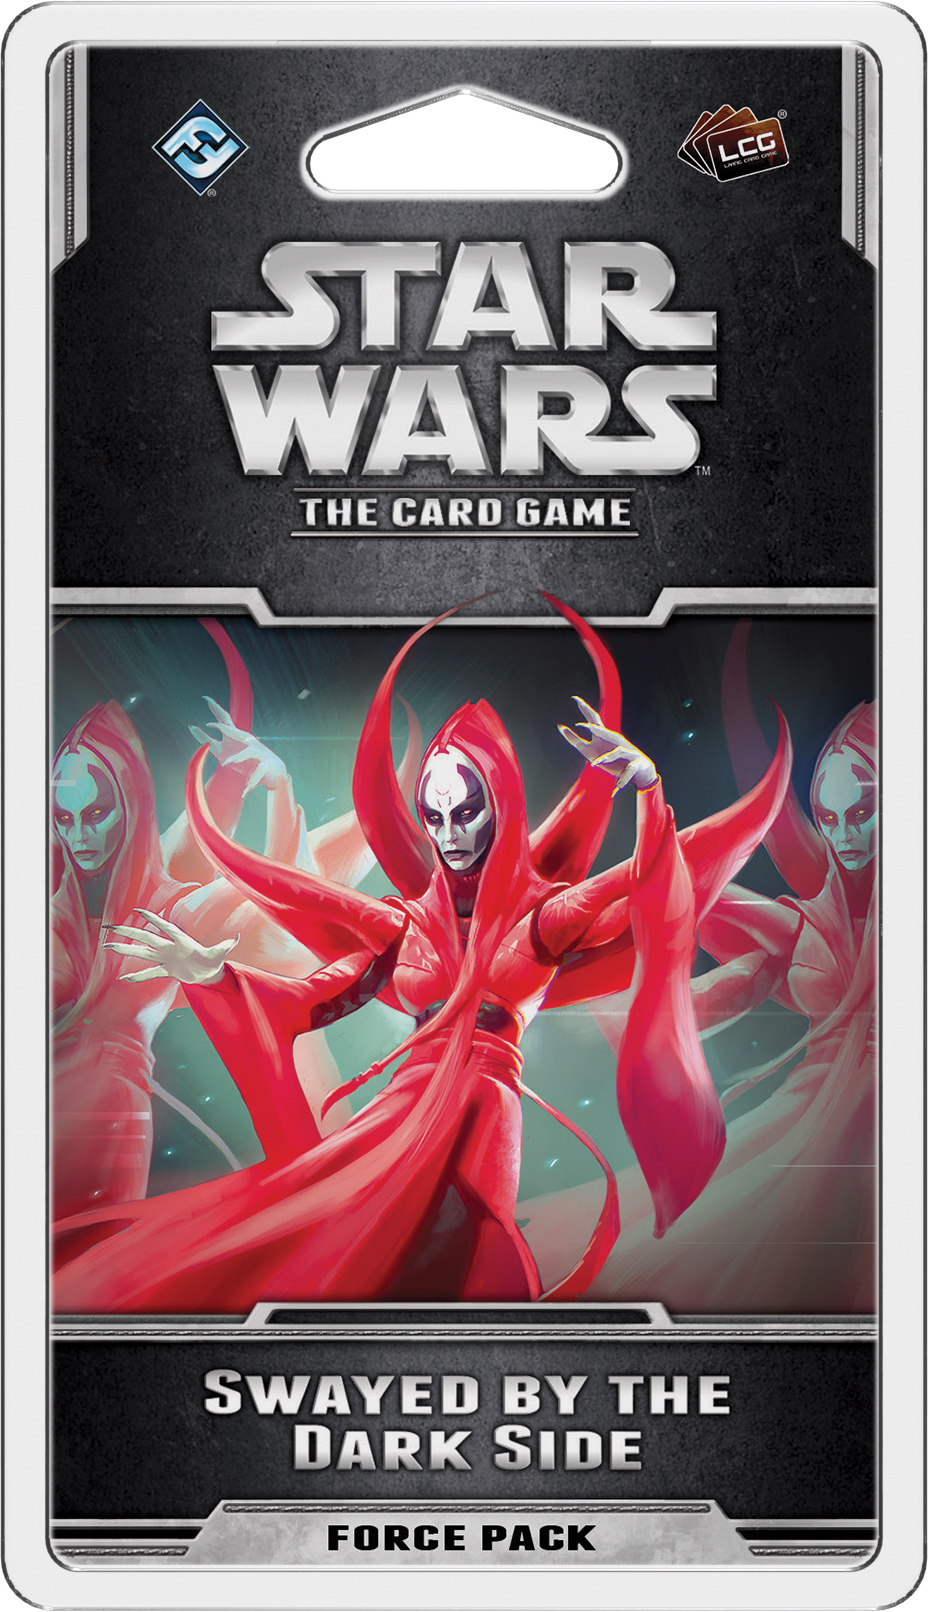 Star Wars Lcg: Swayed By The Dark Side Force Pack Box Front